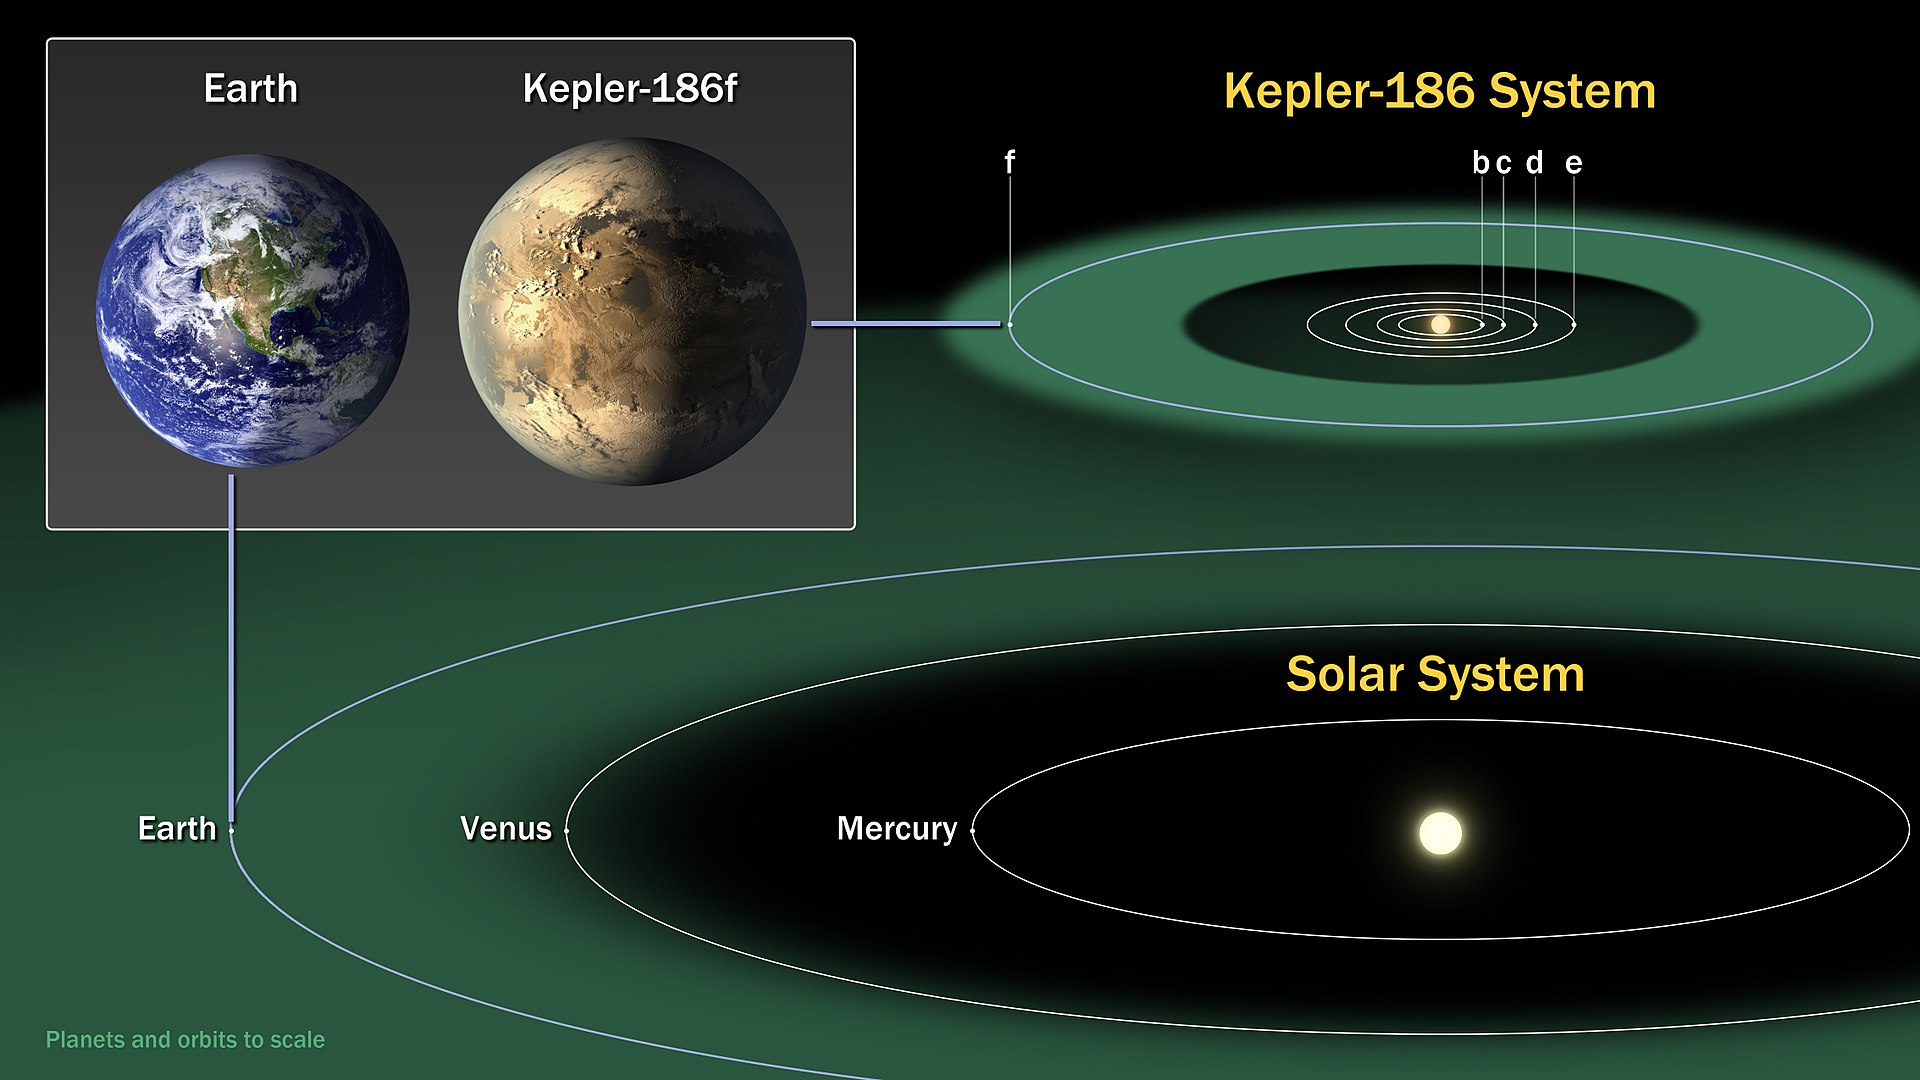 Size comparison of Kepler-186f (artist's impression) with Earth along with their projected habitable zones.